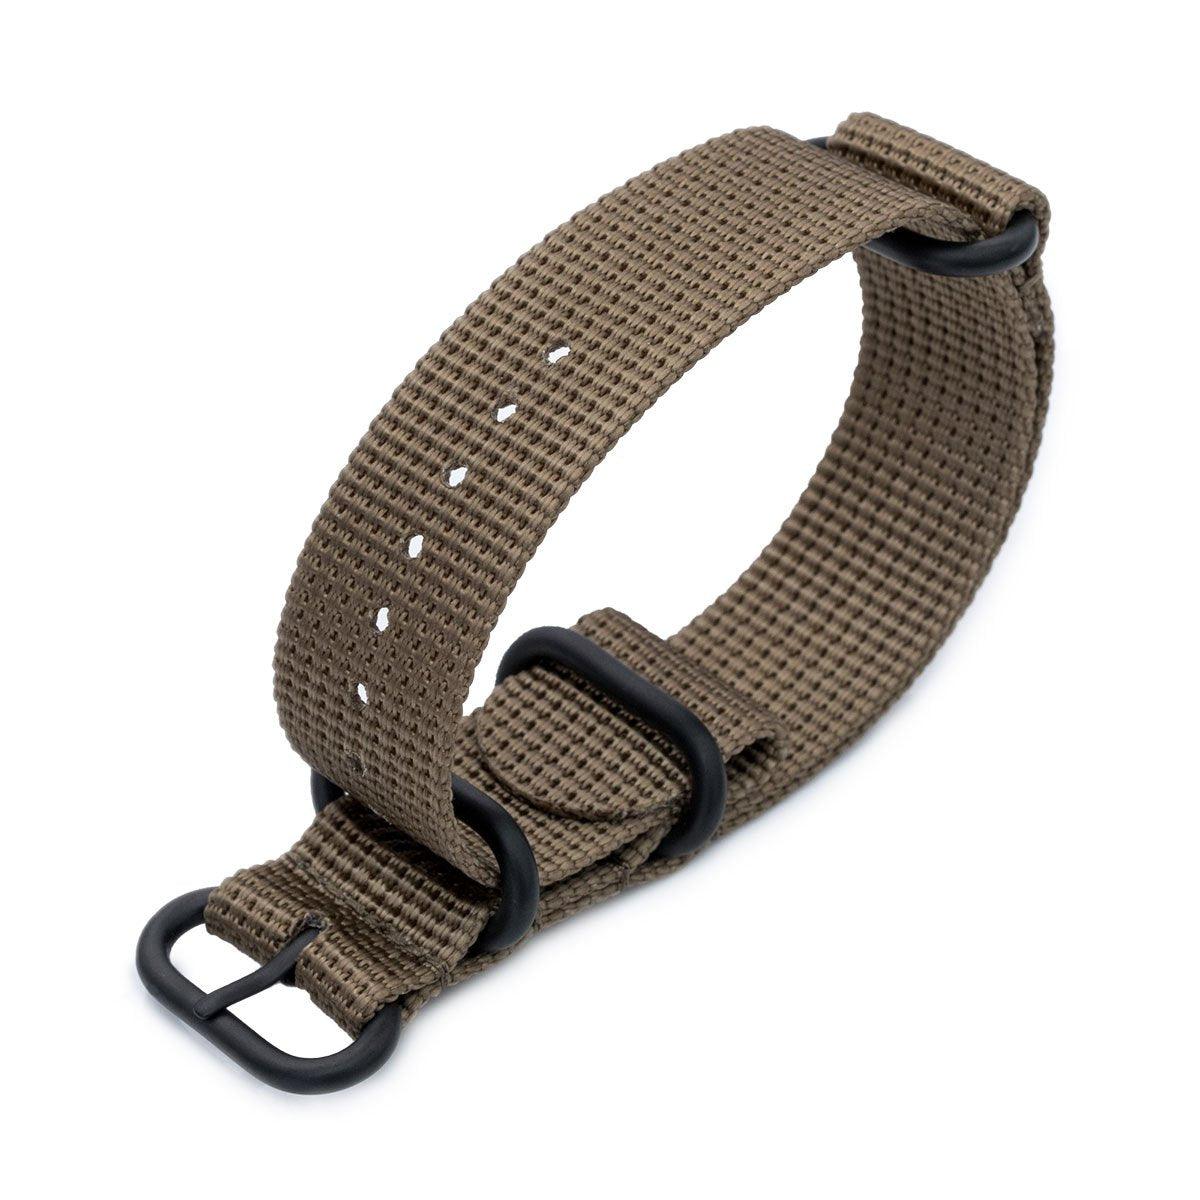 20mm 22mm or 24mm MiLTAT 3 Rings Zulu military watch strap 3D woven nylon armband Khaki PVD Black Hardware Strapcode Watch Bands